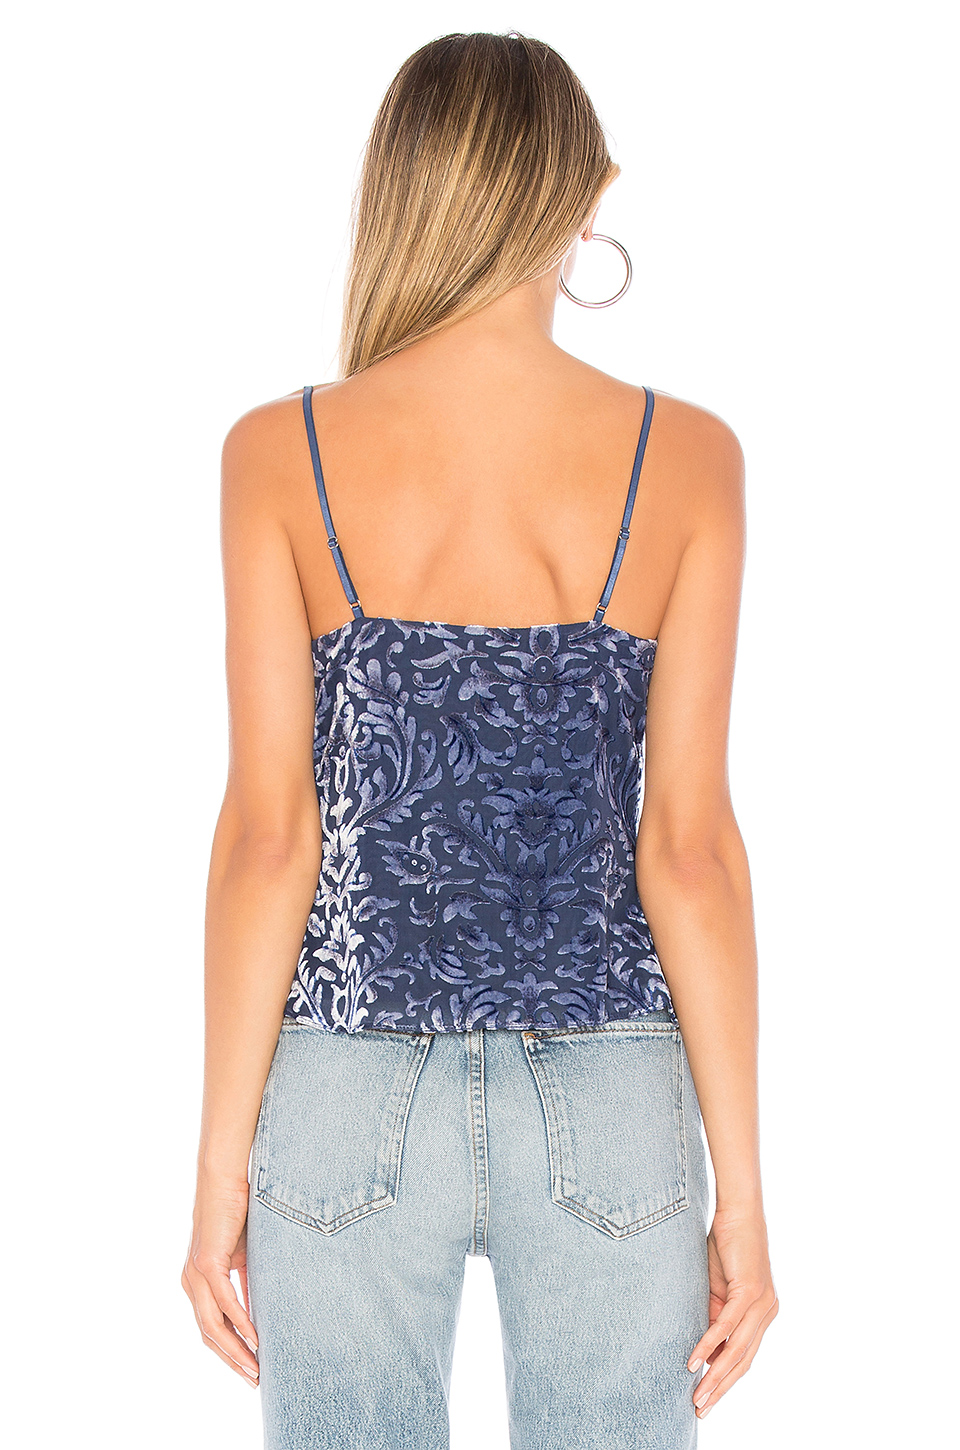 MAJORELLE Jezebel Top